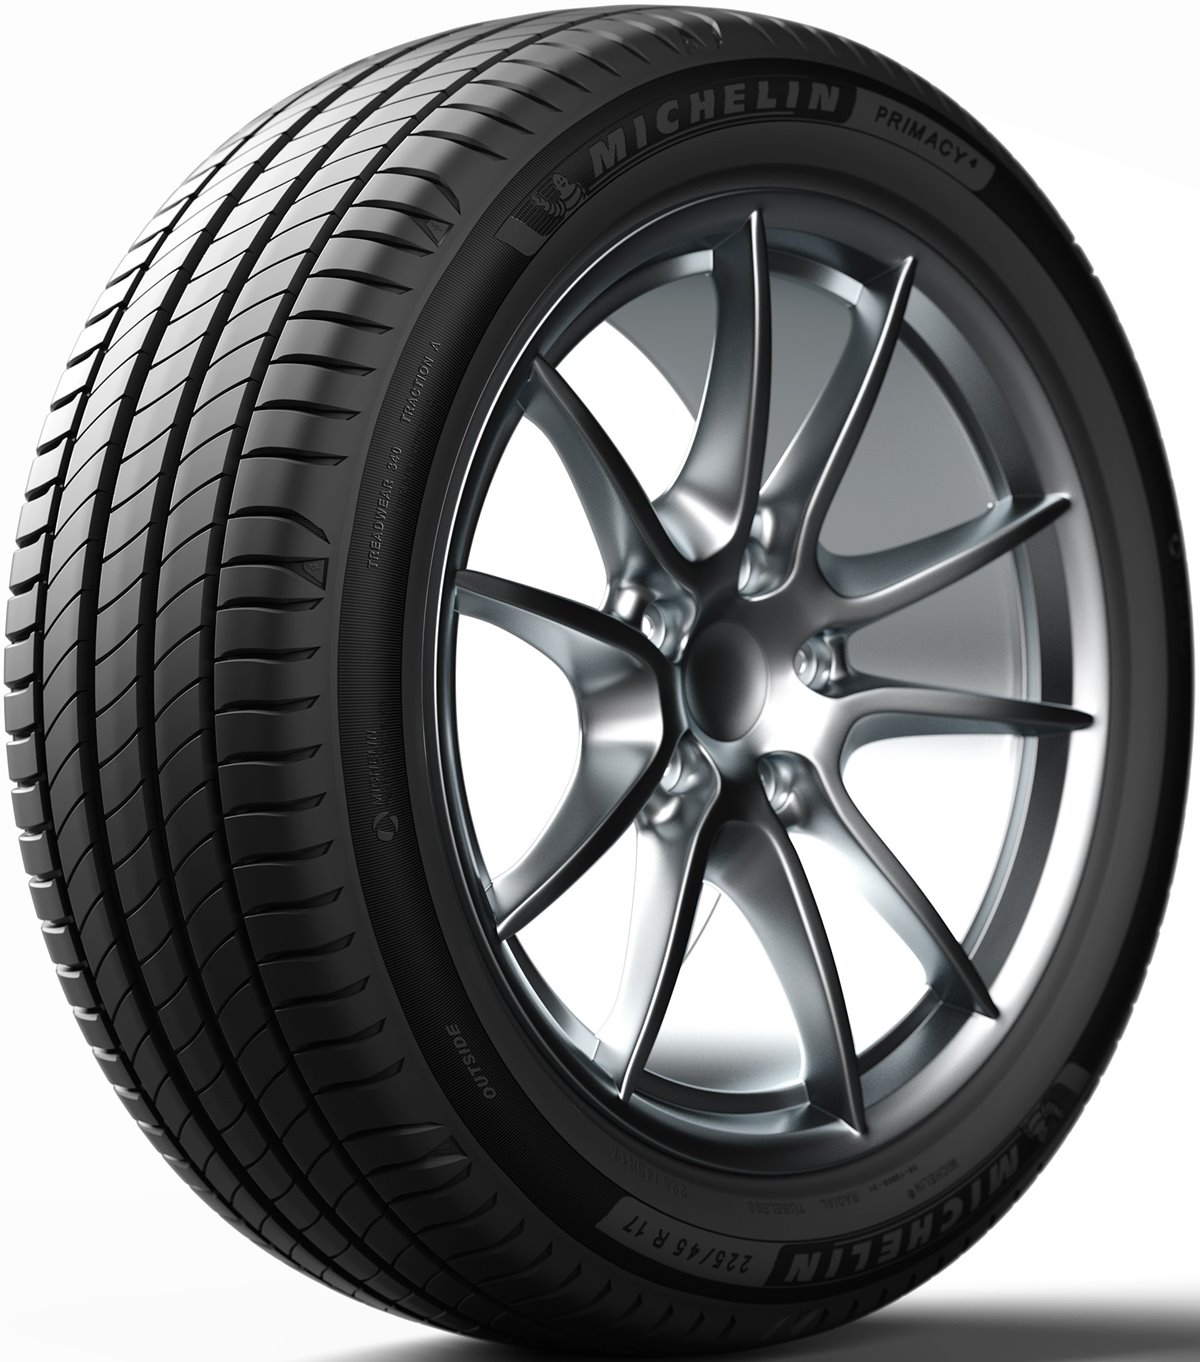 Michelin Primacy 4 22545 R17 94 W Xl Fr Voidapl